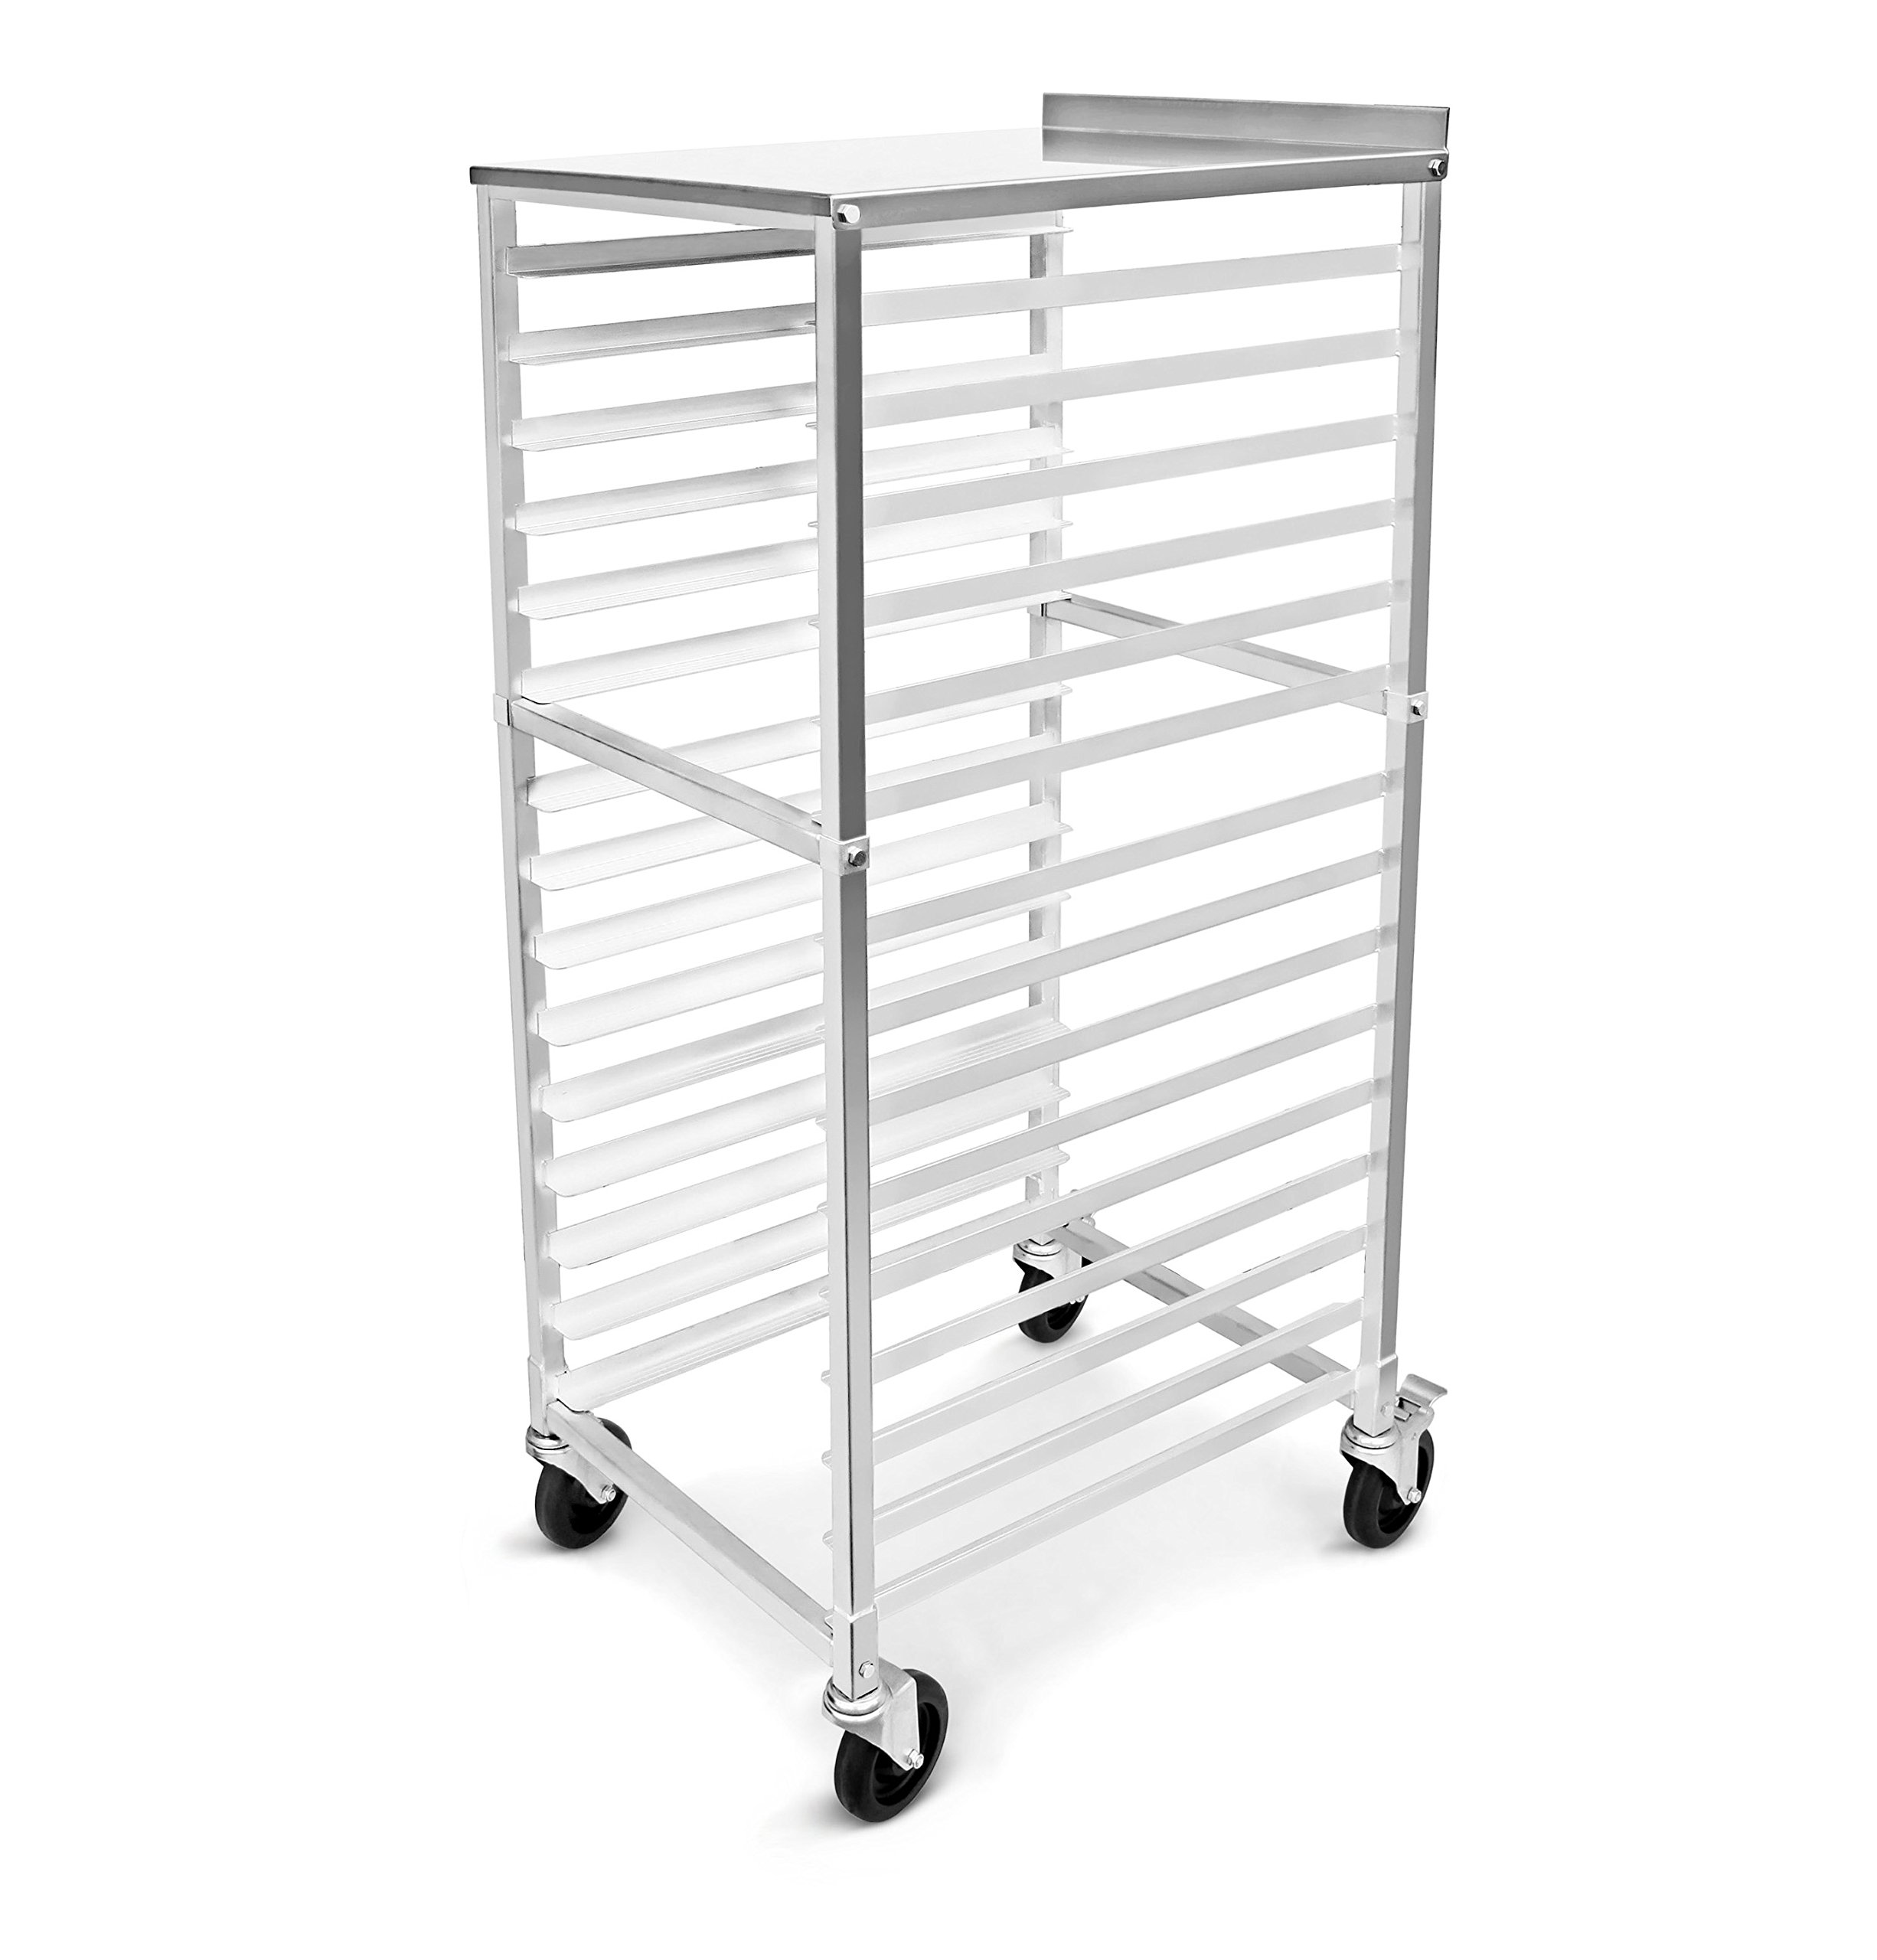 New Star Foodservice 42962 Commercial Sheet Pan Rack, Aluminum, Backsplash Top, 15-Tier, 26 x 20 x 55 inch